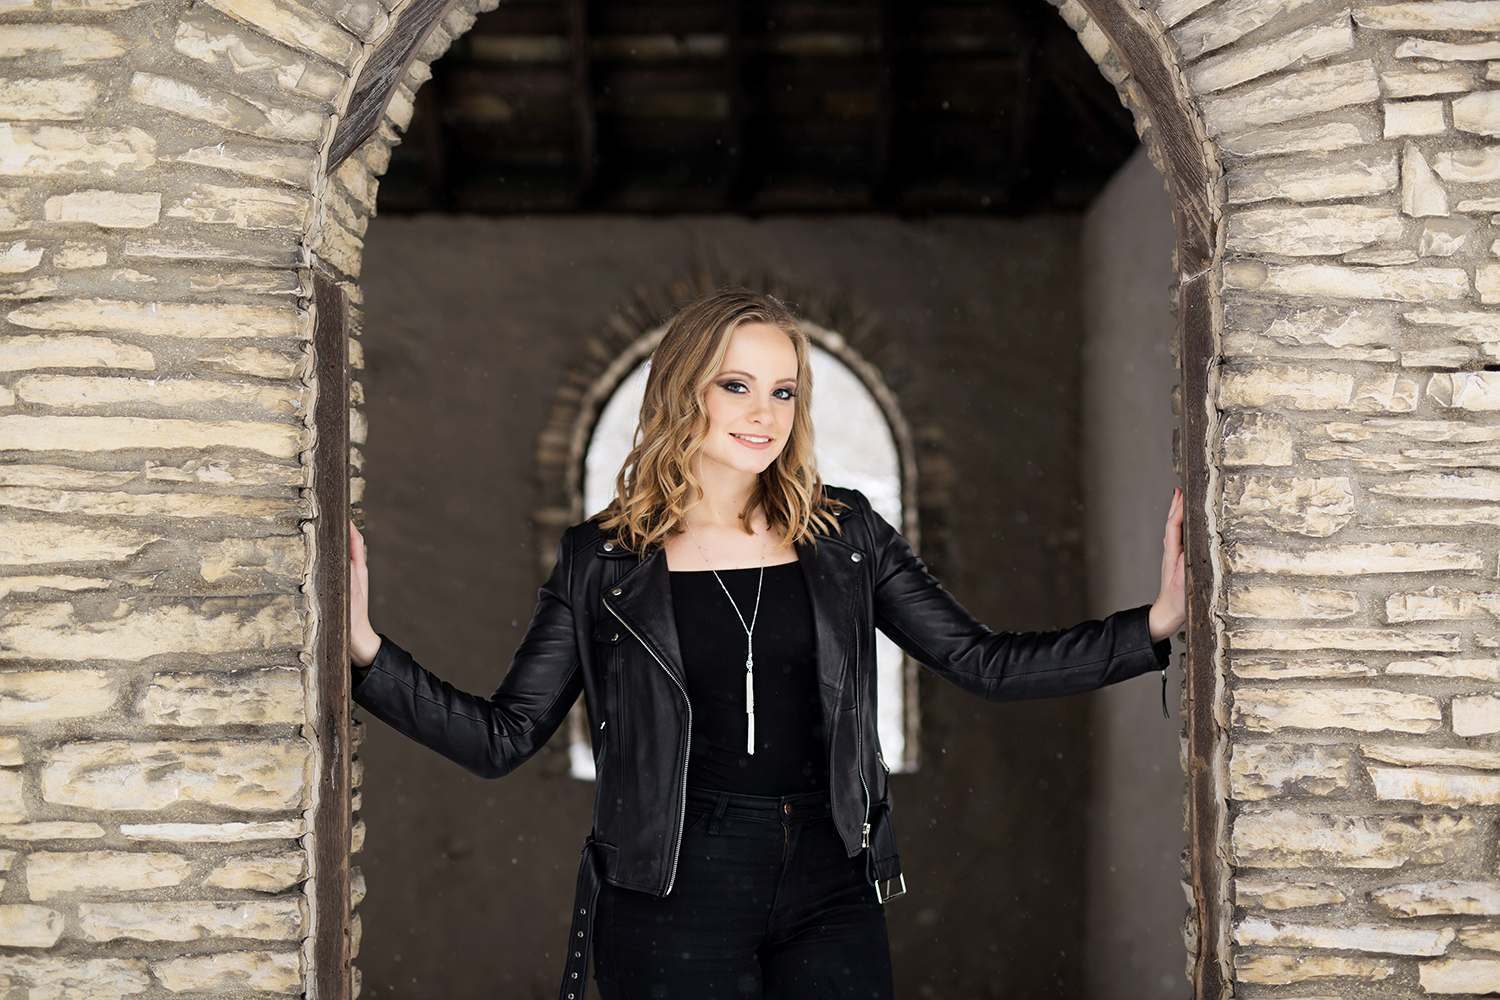 a senior in all black posing in between a stone an arch way.